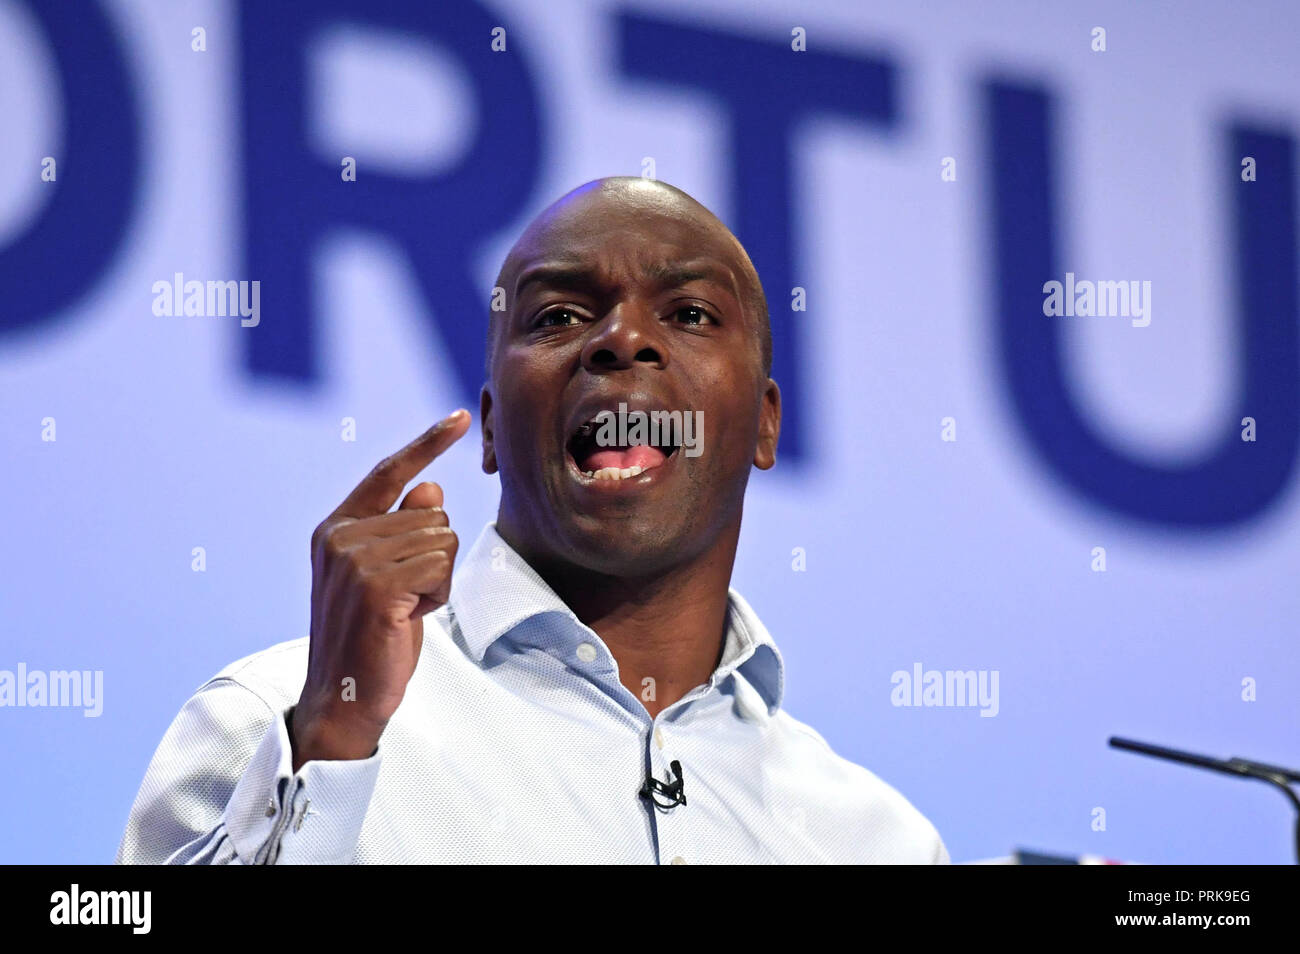 Shaun Bailey, who is the Conservative candidate for the next London mayoral election, speaks during the Conservative Party annual conference at the International Convention Centre, Birmingham. - Stock Image